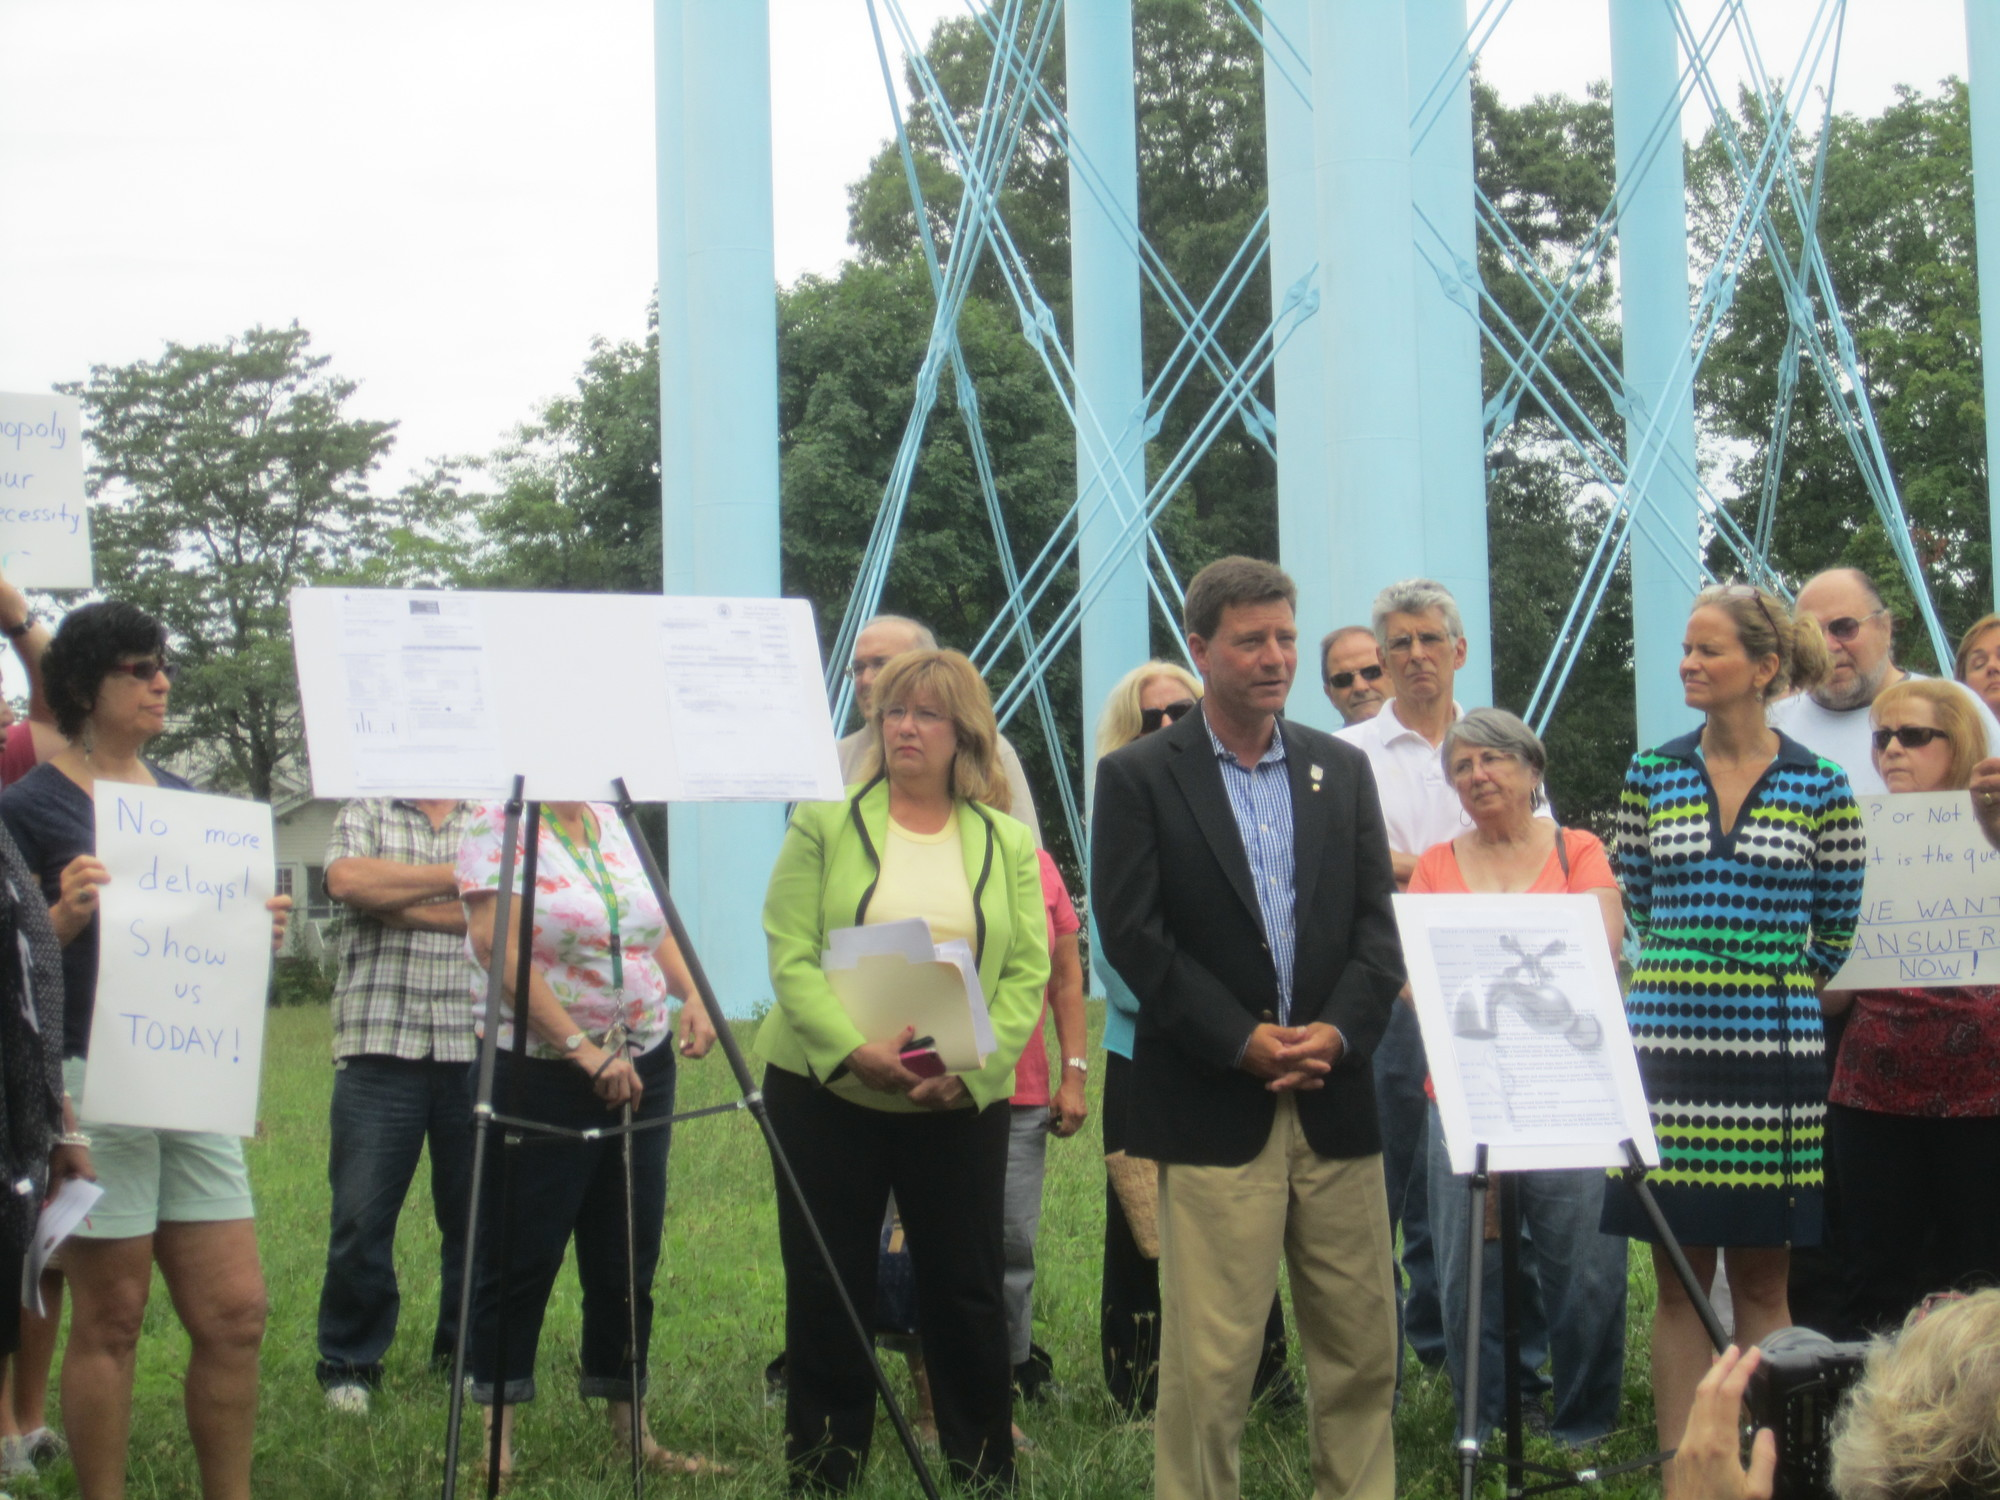 Nassau County Legislator Dave Denenberg, fourth from right, front, led a July 16 protest at the Merrick water tower to call for the release of a draft study of a proposed public takeover of Long Island American Water. To Denenberg's left was County Legislator Laura Curran. About 30 local residents joined them.